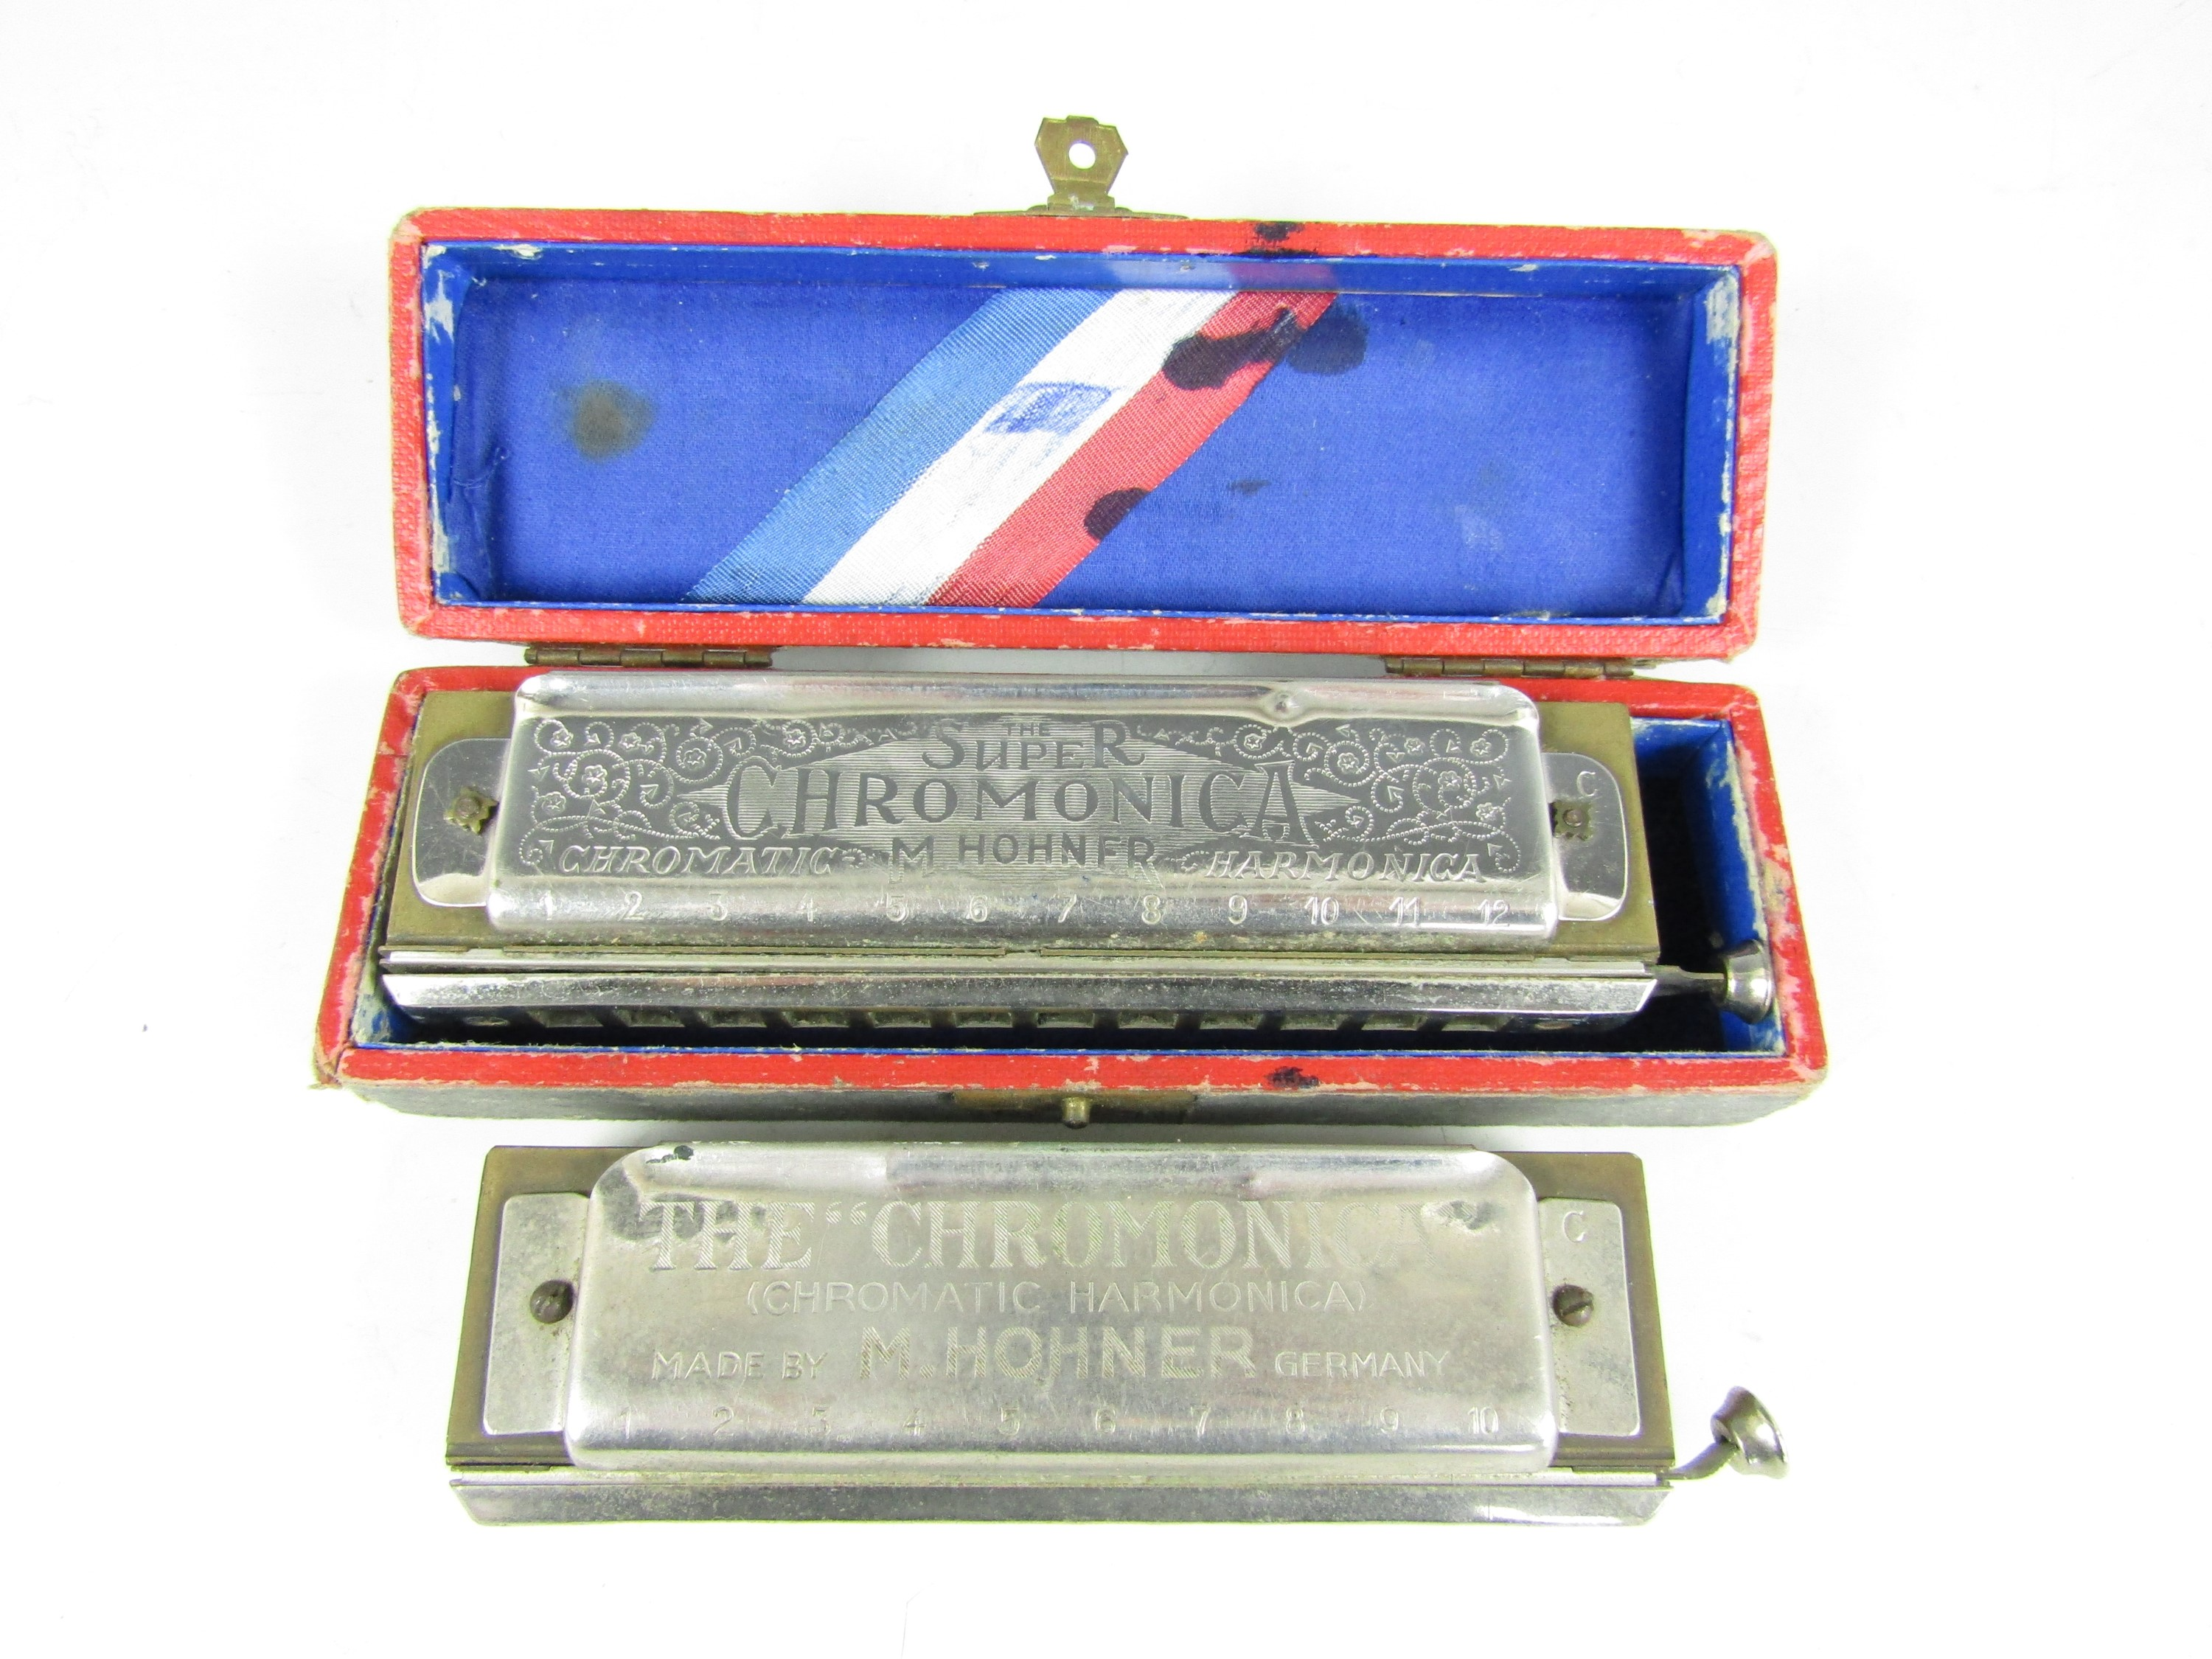 Lot 37 - A boxed Hohner The Super Chromonica chromatic harmonica together with one other